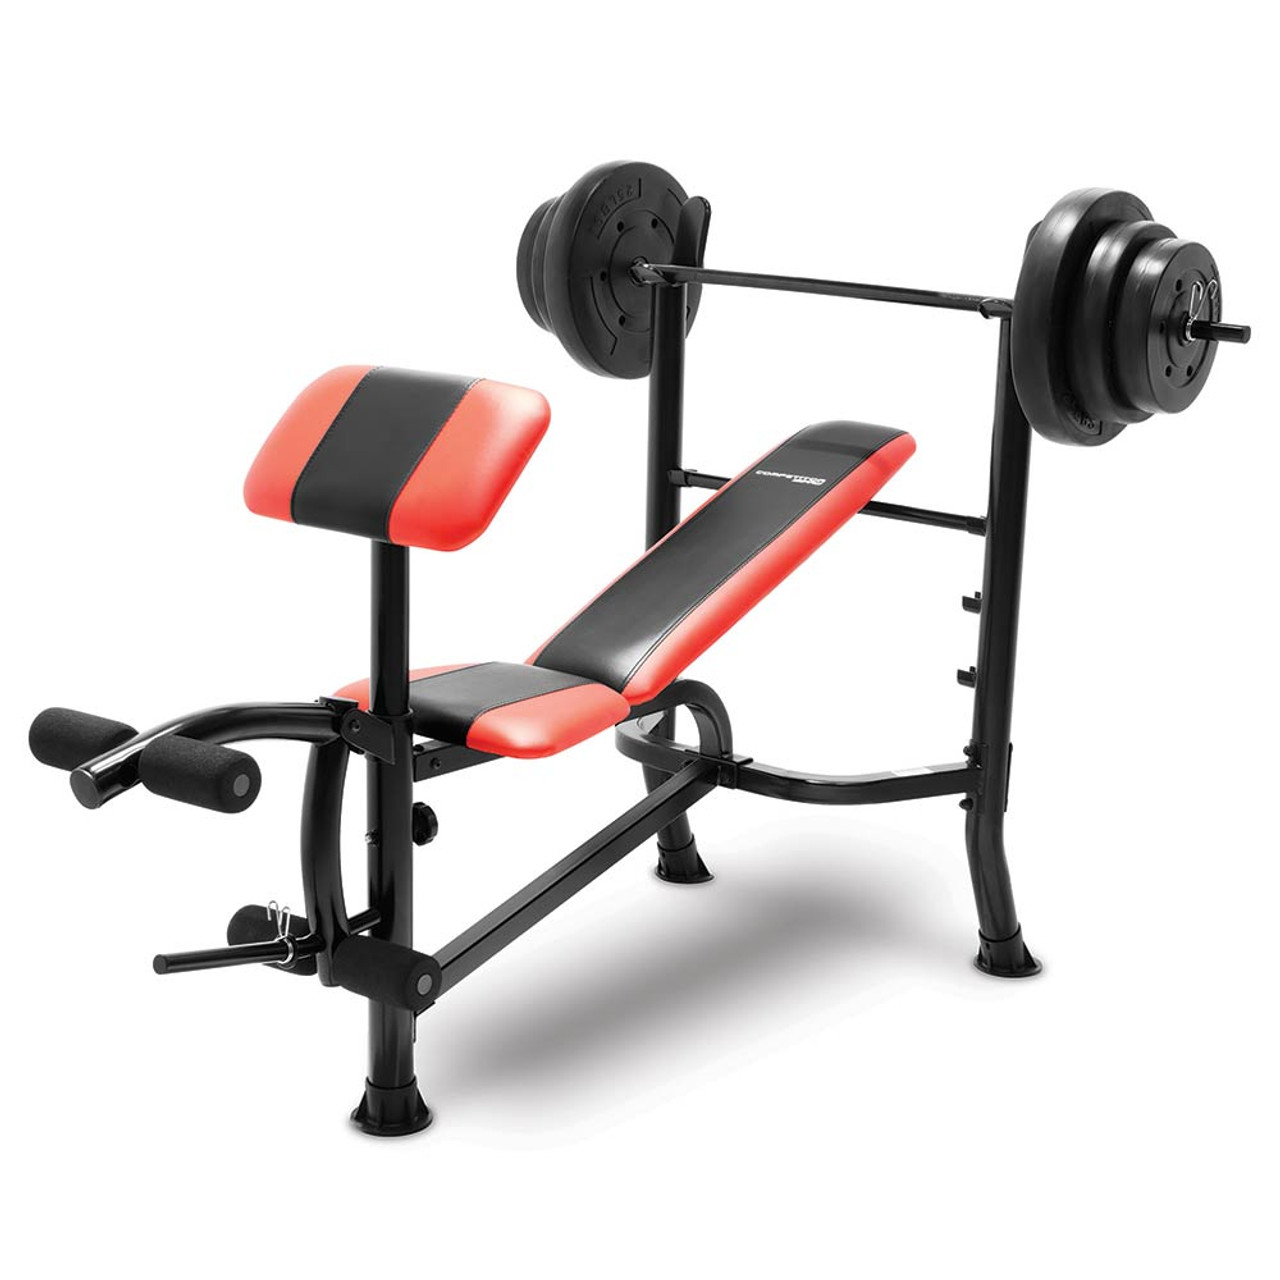 Competitor Bench 100 Lb Weight Set Cb 2982 Quality Strength